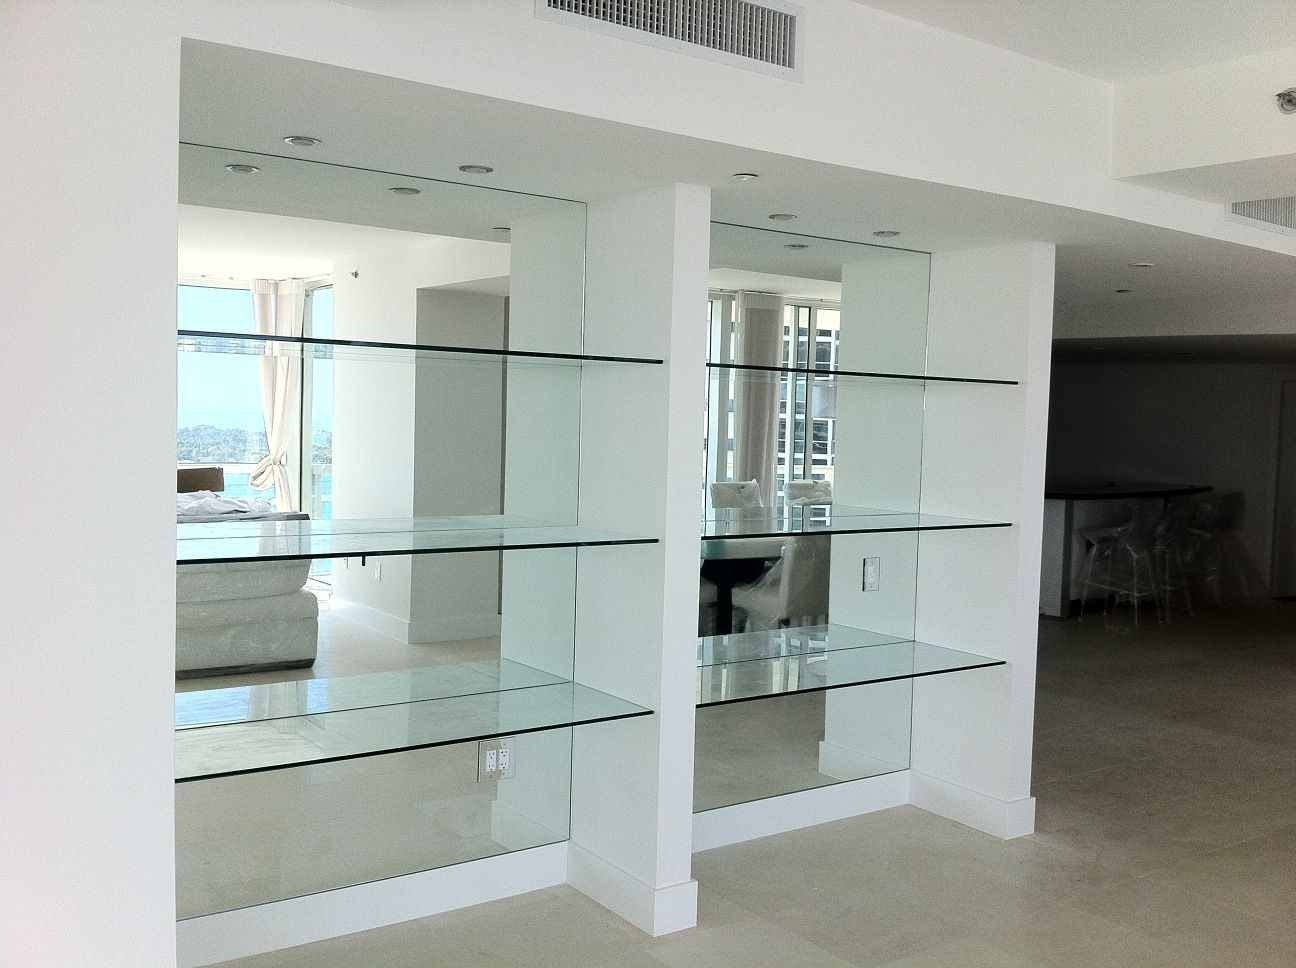 Mirror Glass Shelves Google Search Shop2 Pinterest Glass Shelves Shelves And Shelving